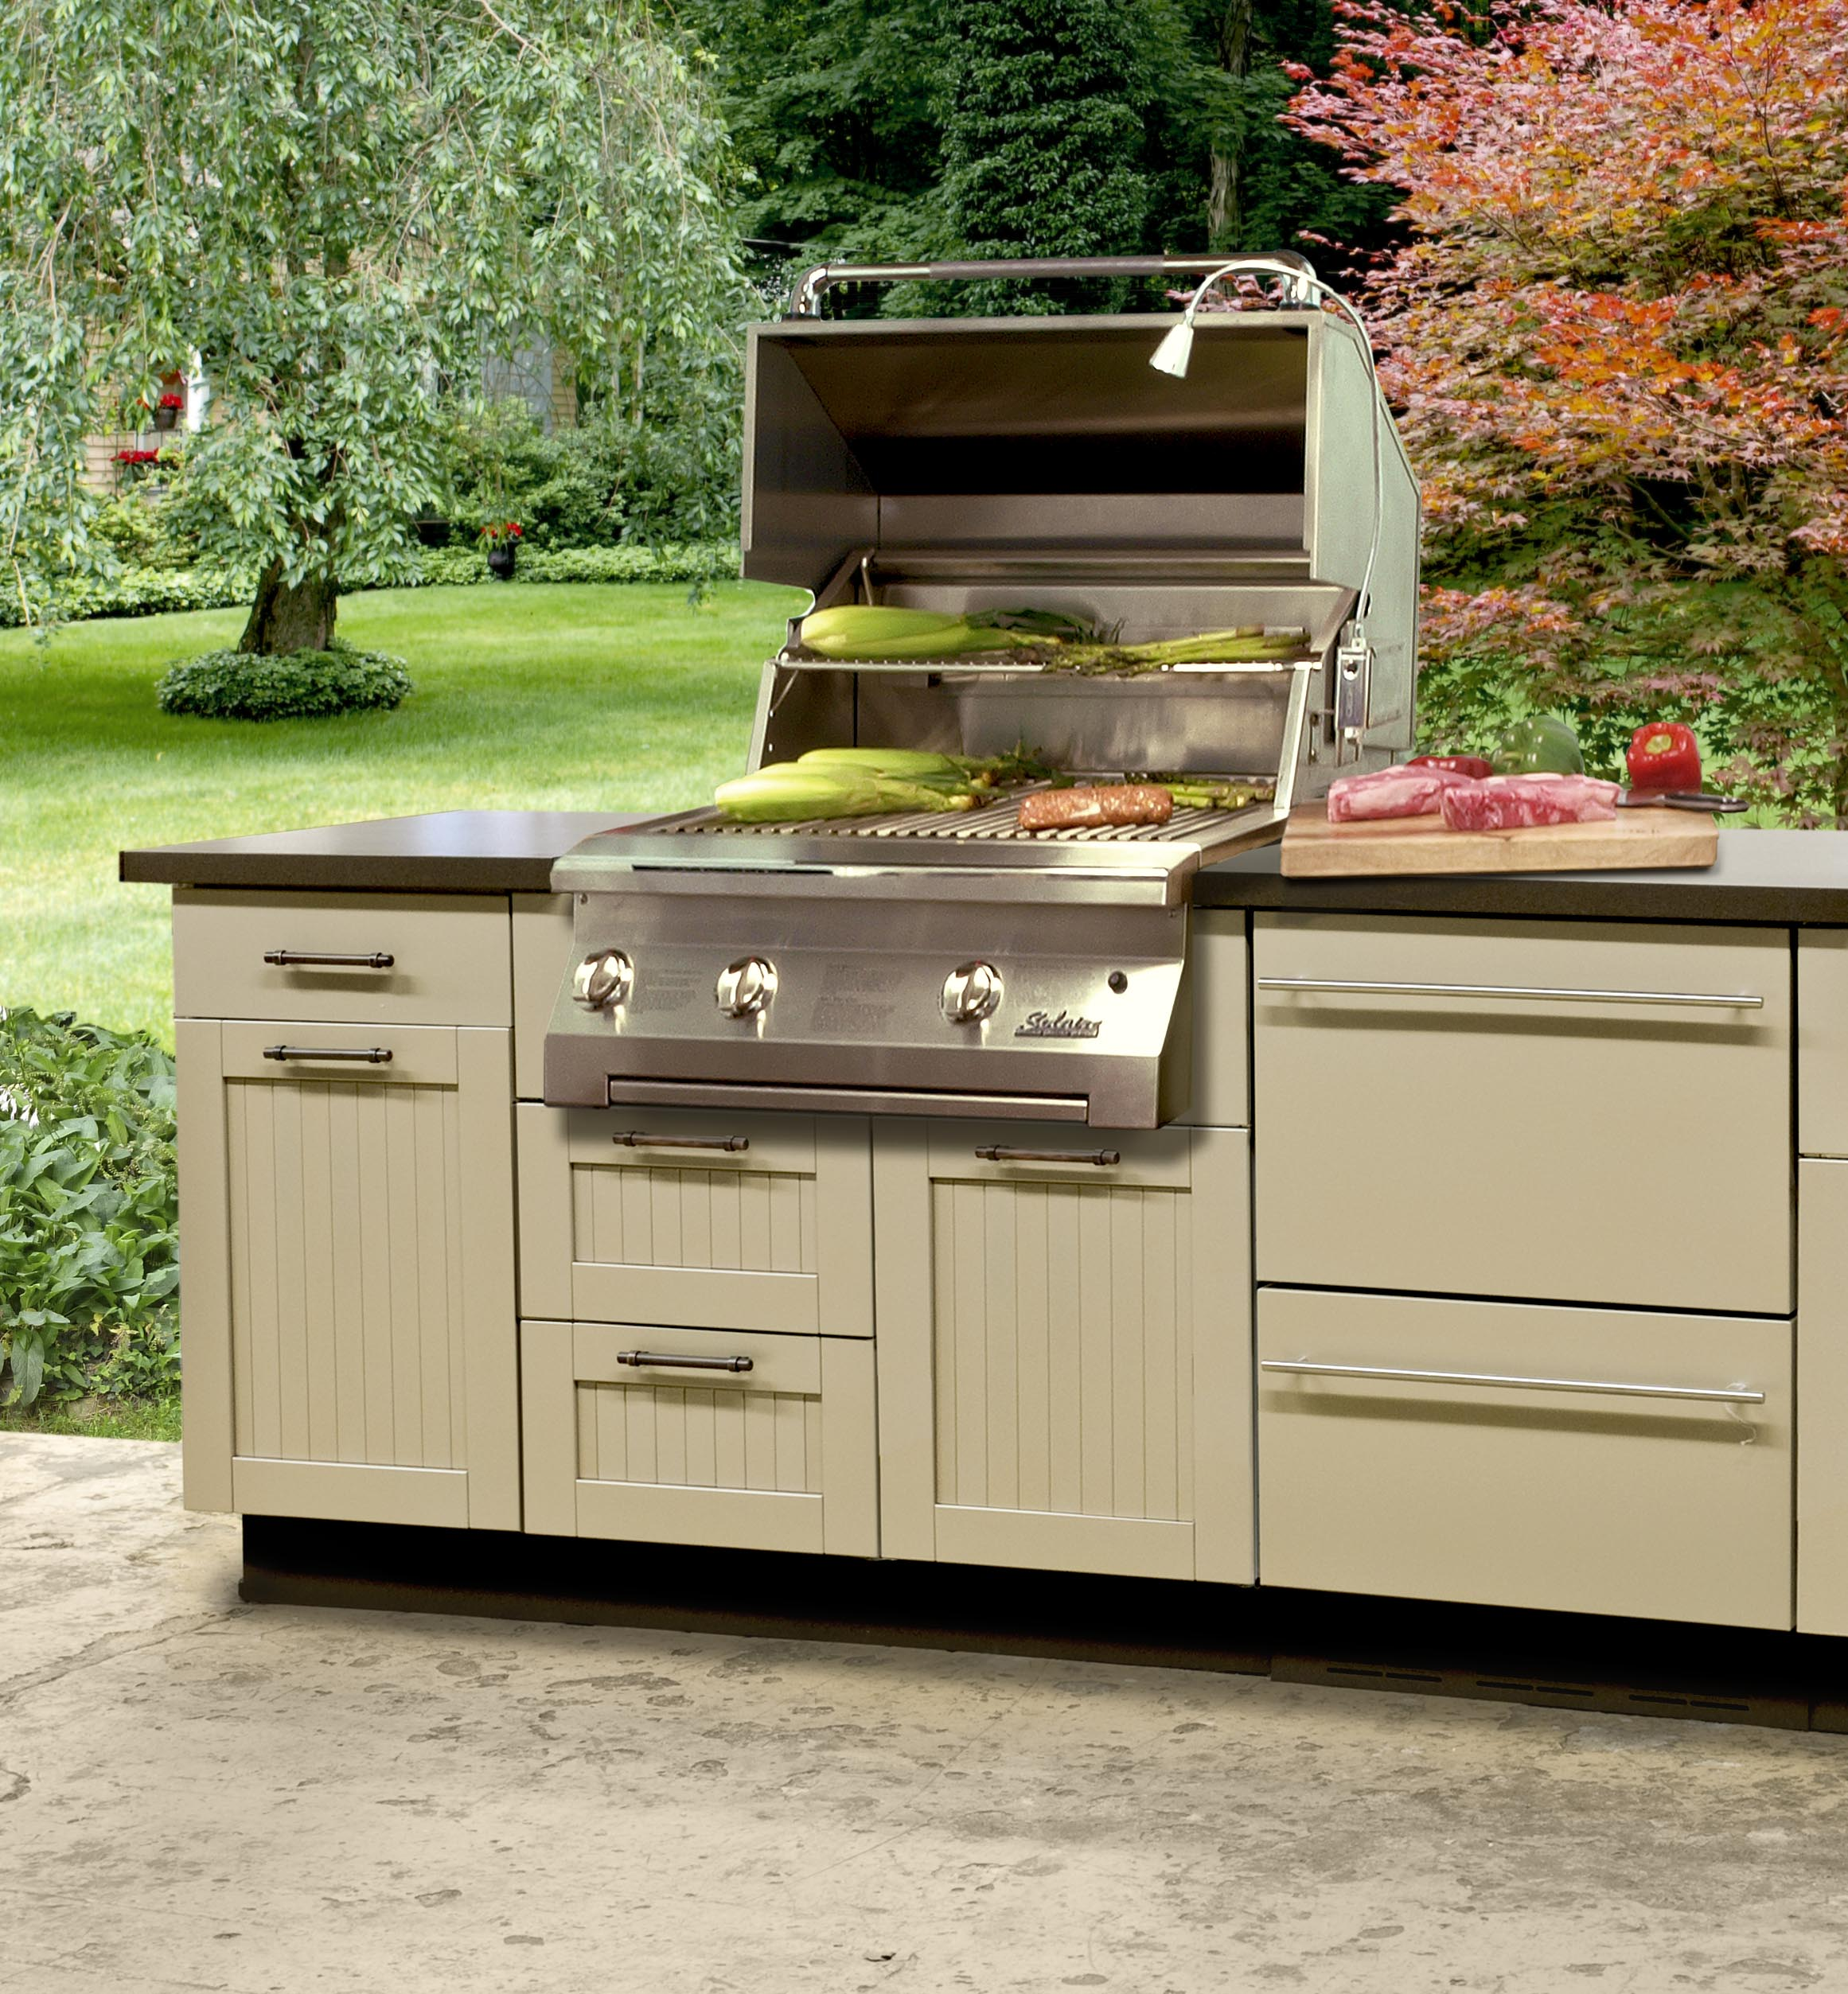 Danver stainless steel cabinetry kbtribechat for Stainless steel outdoor kitchen